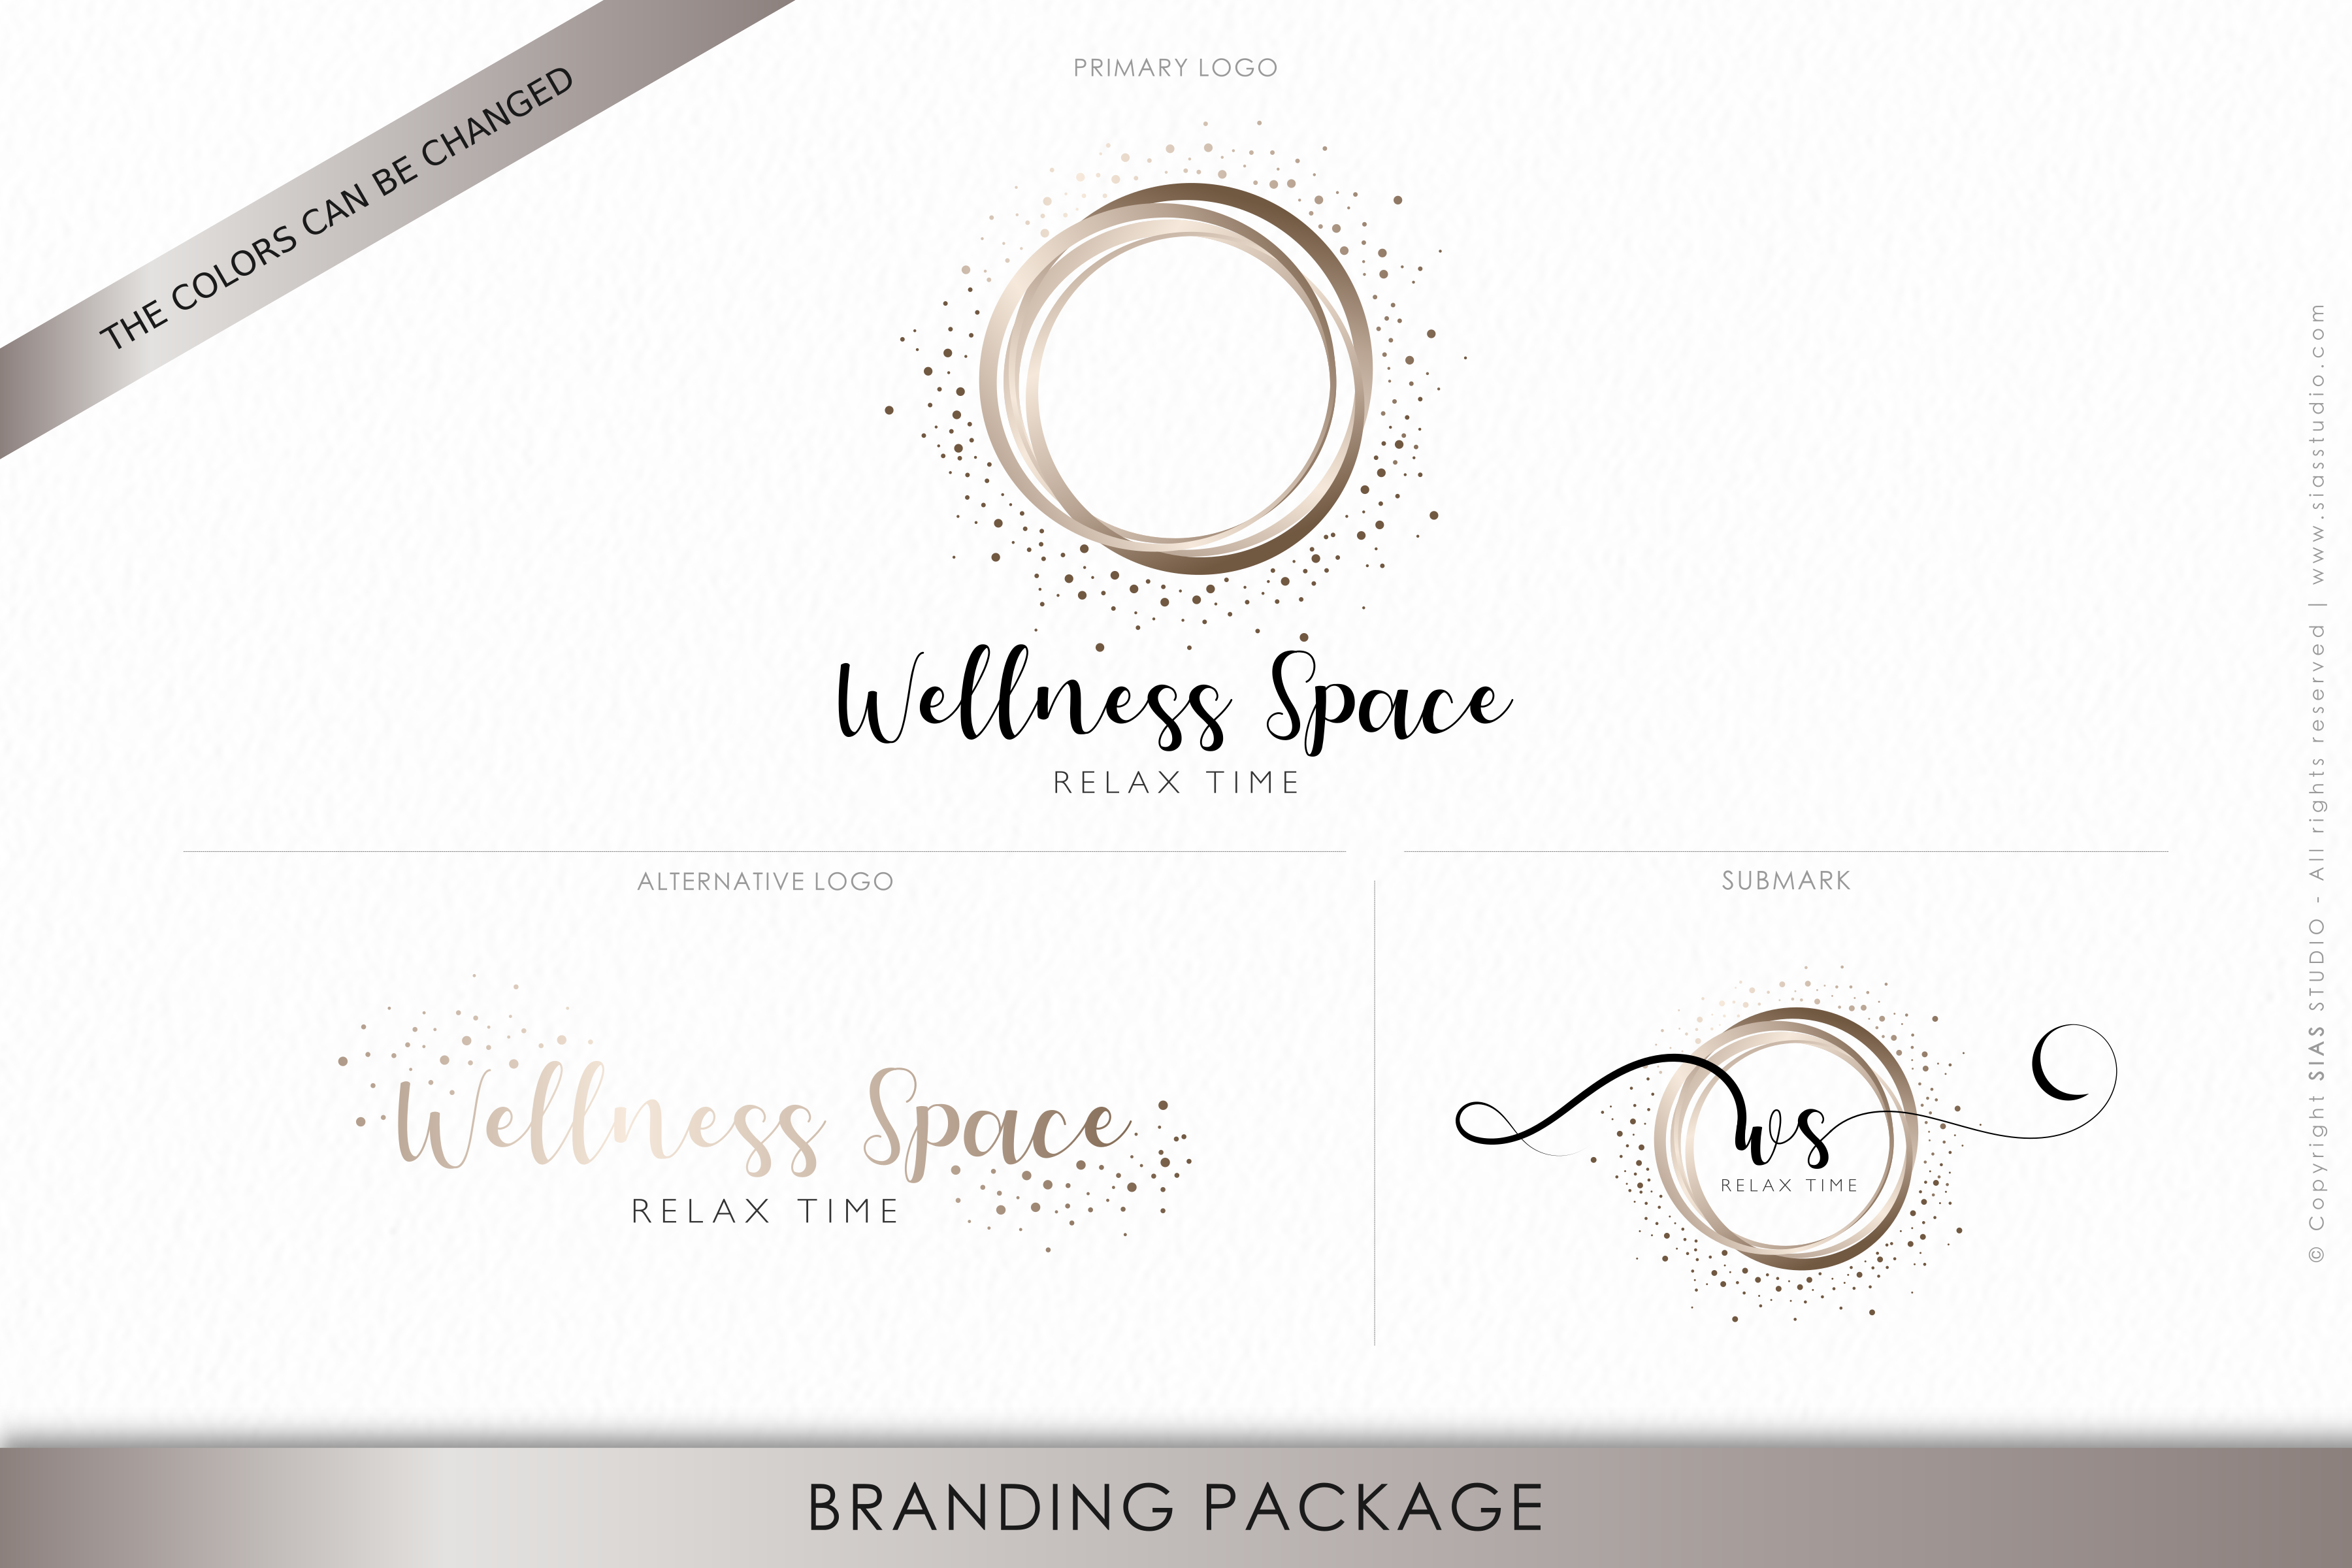 Premade Branding Package Wellness Space Elegant Design With Circles